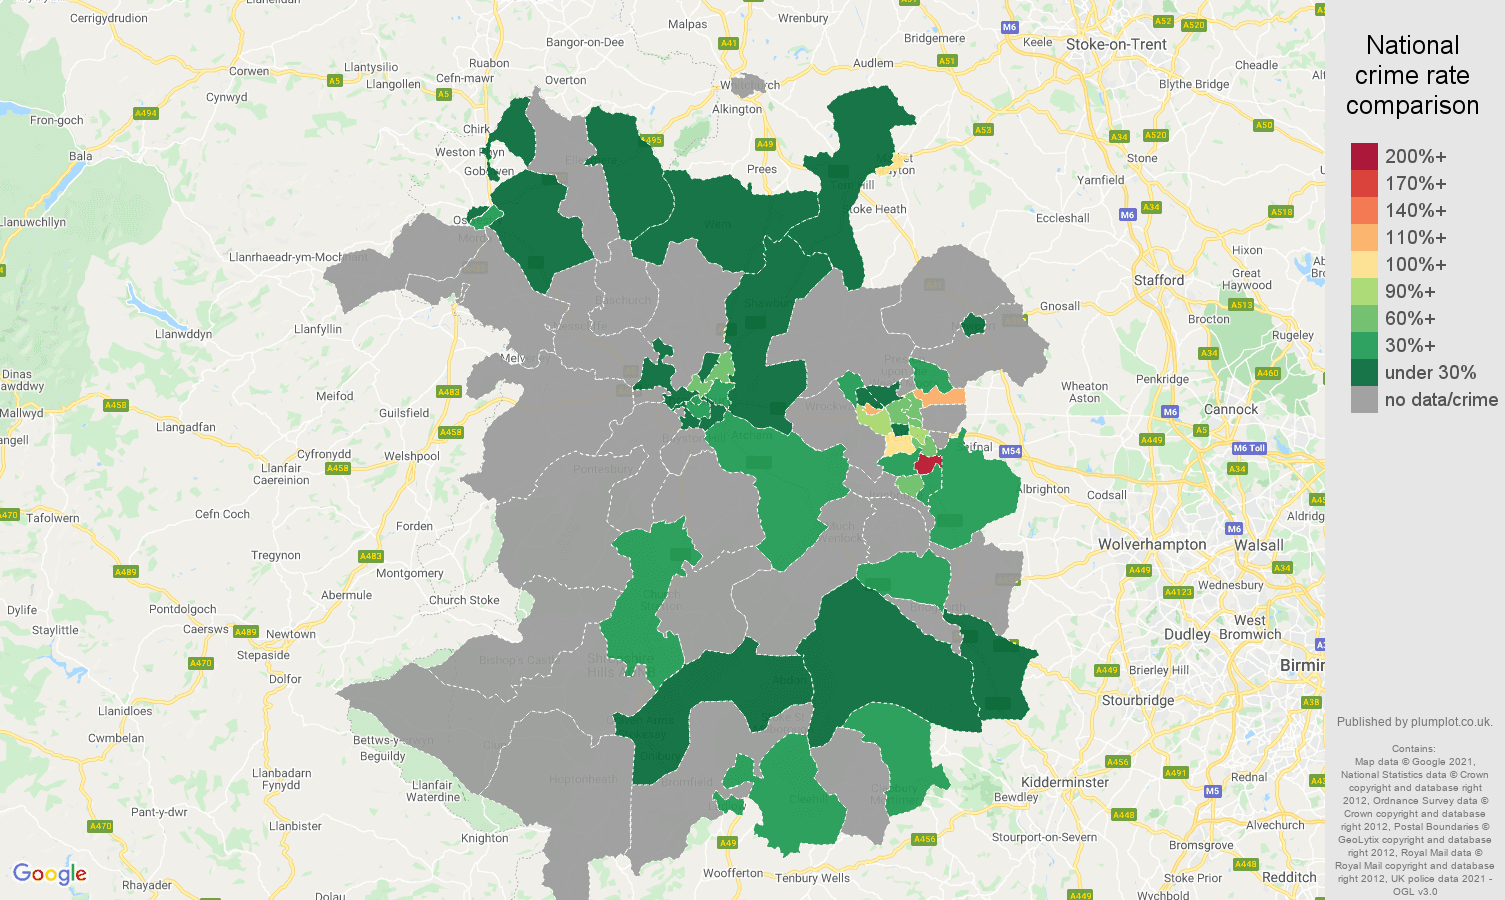 Shropshire robbery crime rate comparison map